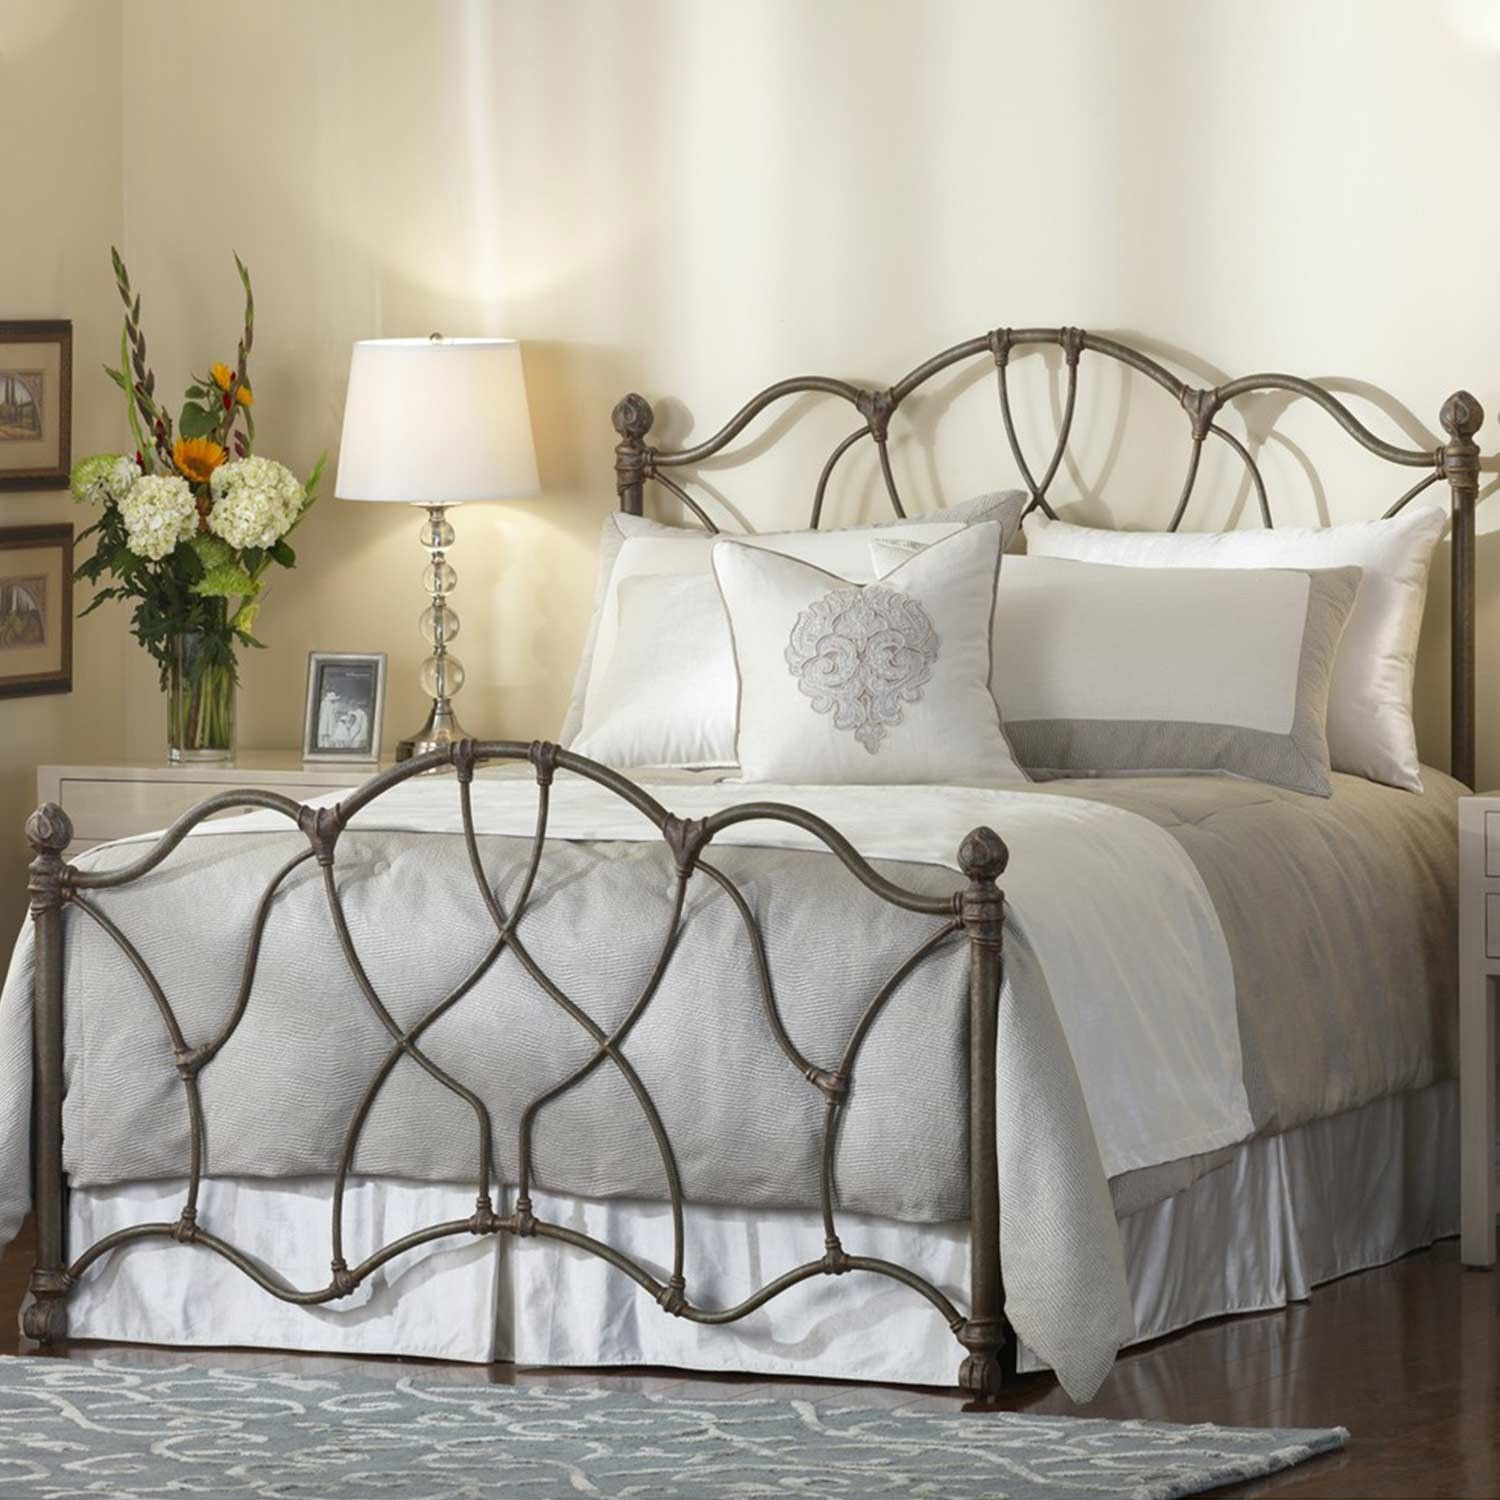 Morsley Iron Bed by Wesley Allen in Textured Old World